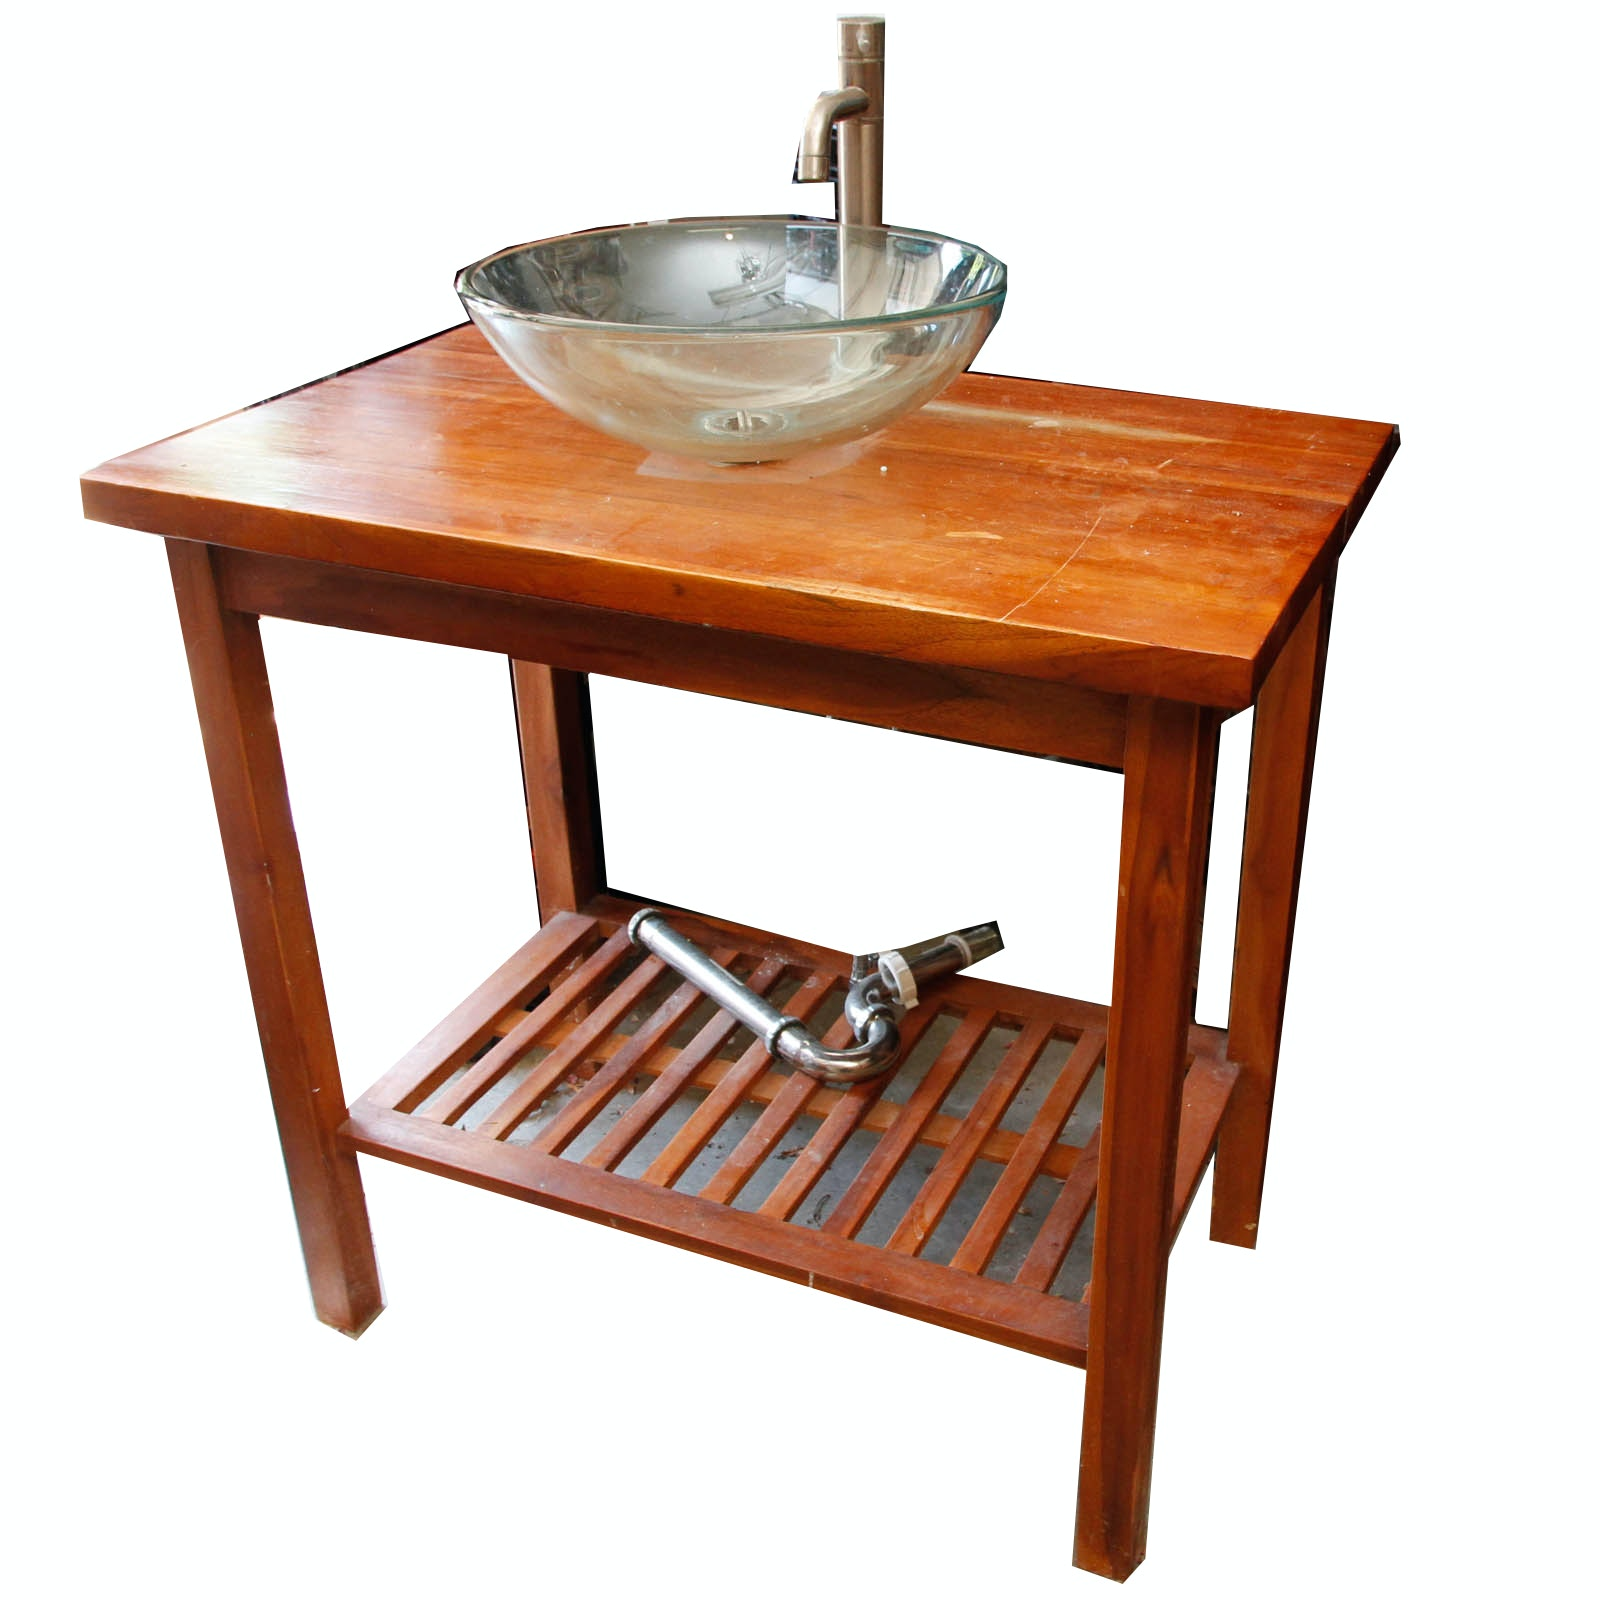 Delicieux Teak Bathroom Vanity With Glass Vessel Sink